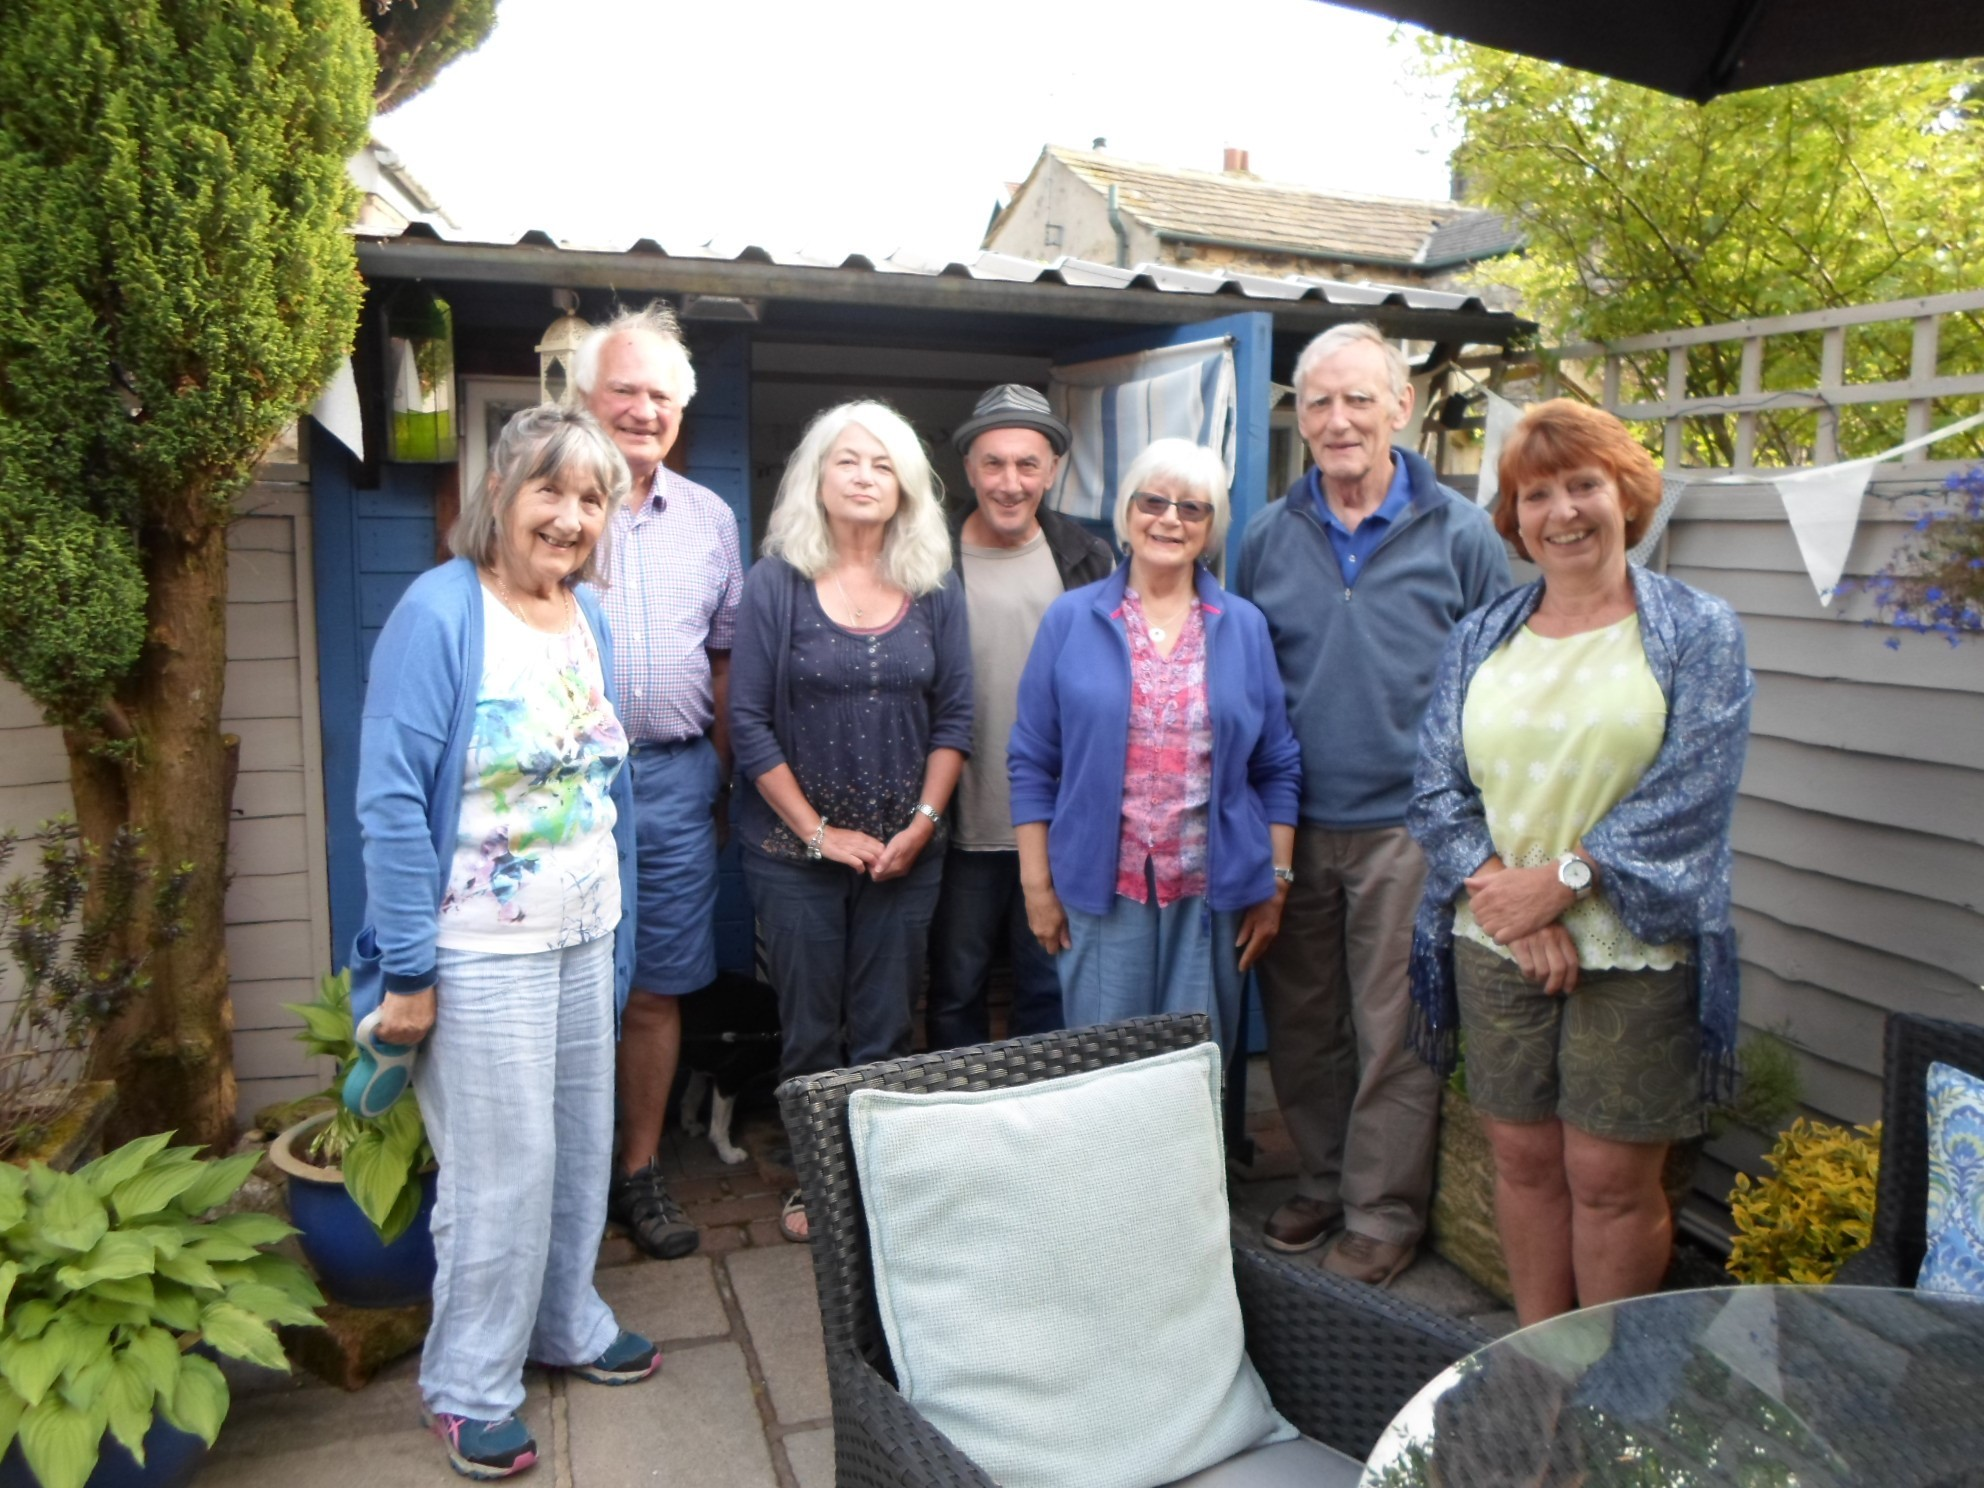 Some of the Langcliffe villagers who opened up their gardens to the public